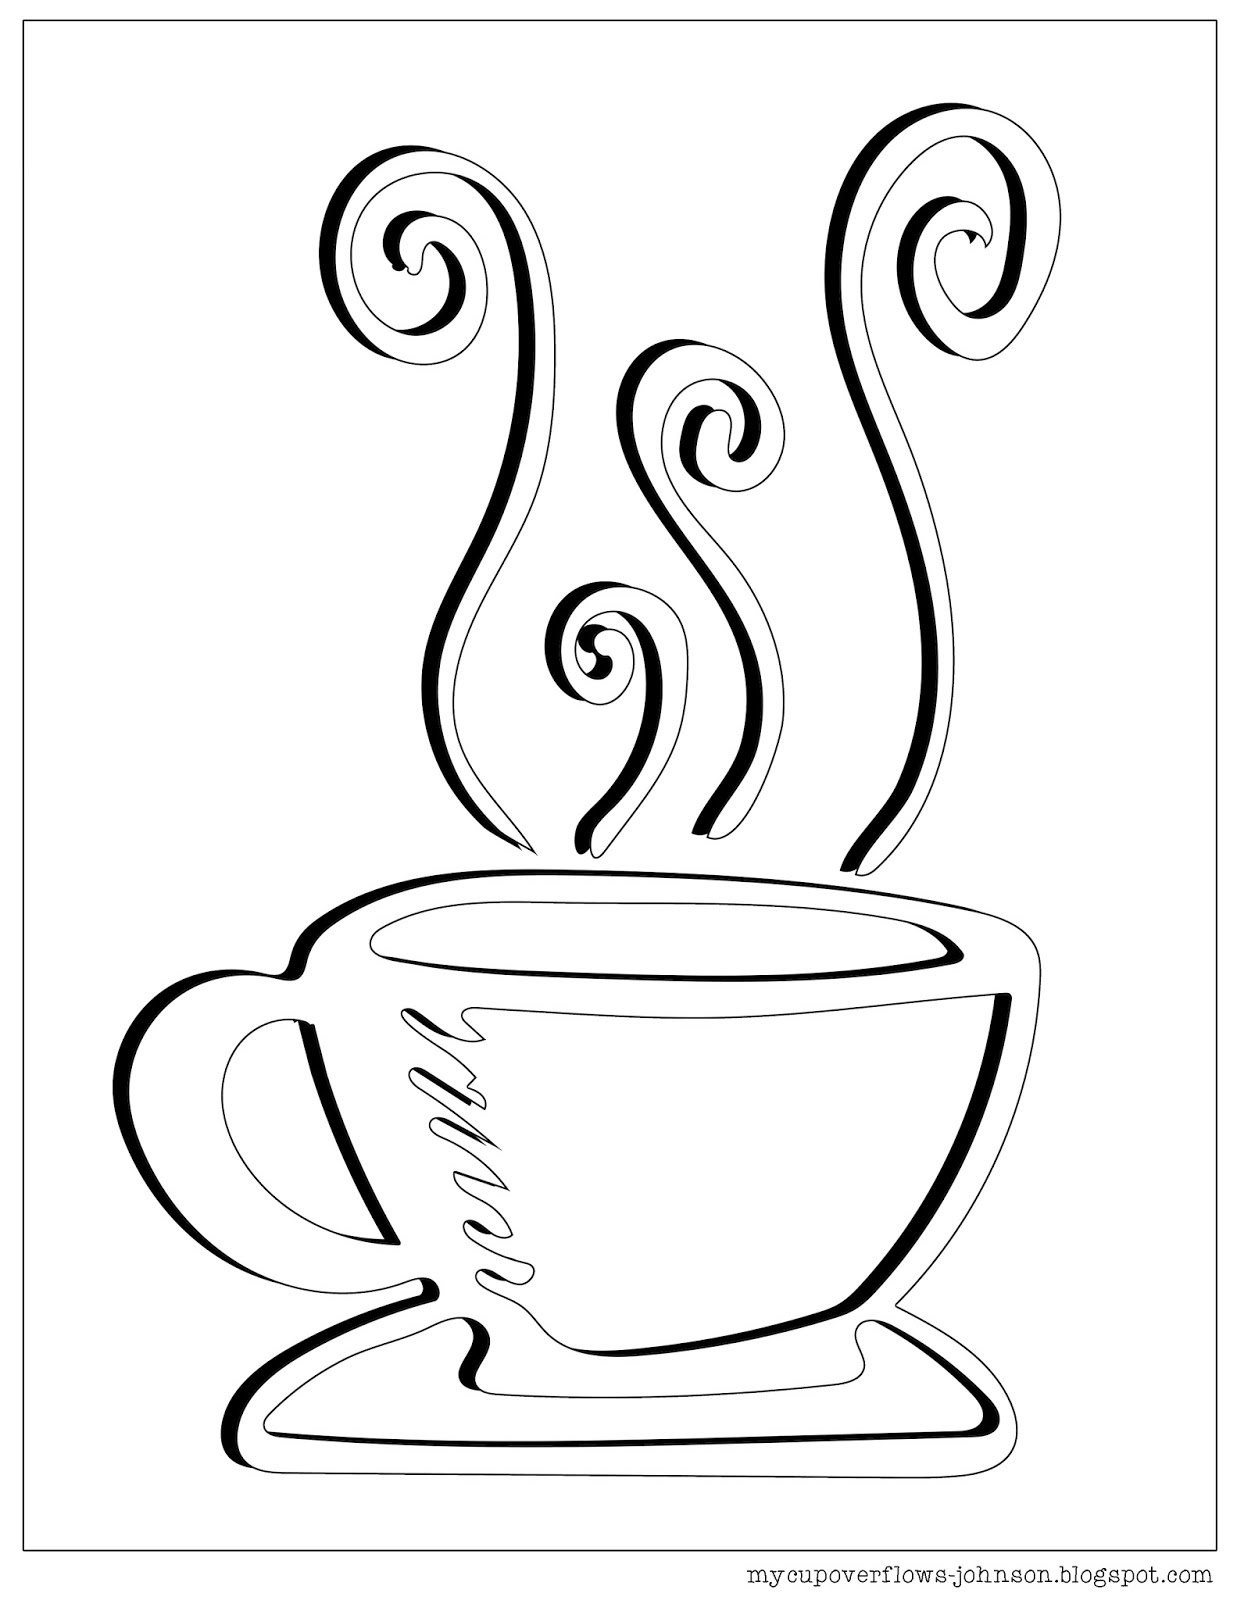 It is a graphic of Gargantuan Teacup Coloring Pages